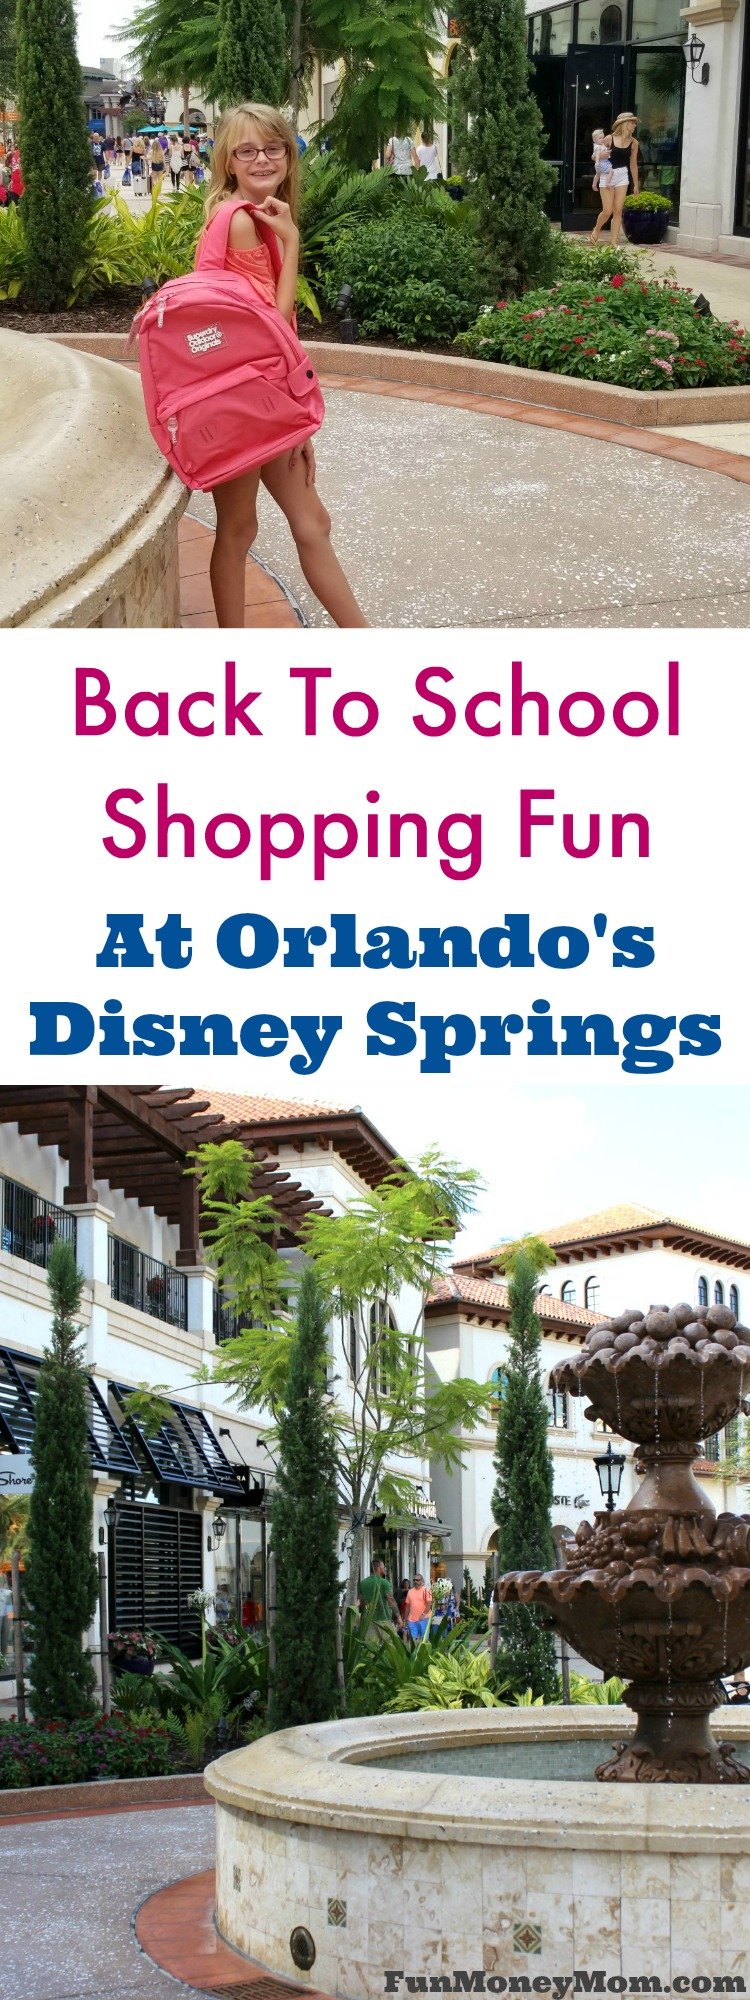 Back to school shopping is so much more fun when you do it at Disney Springs in Orlando #hosted